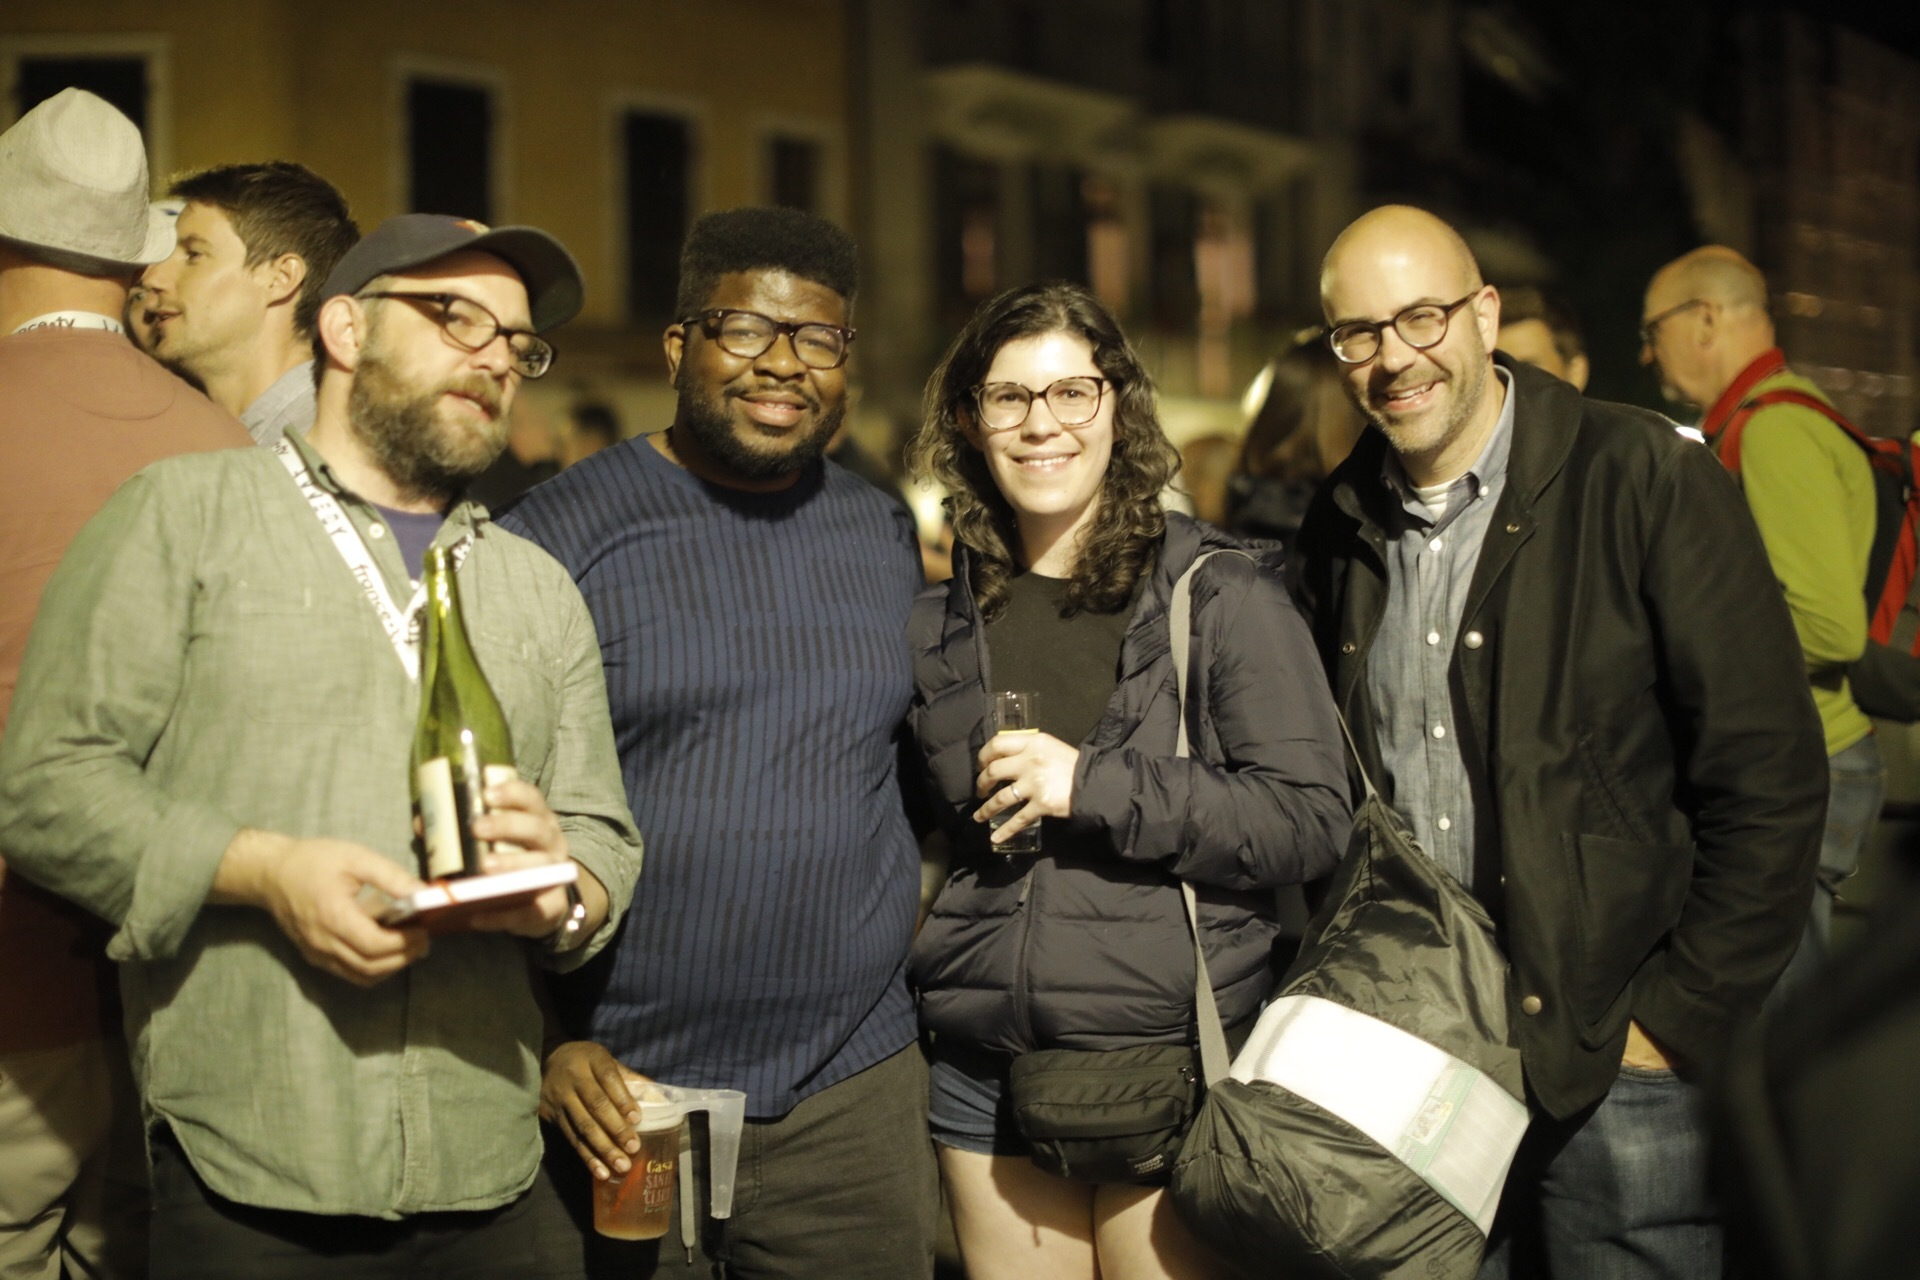 A group of people pose for a photograph.